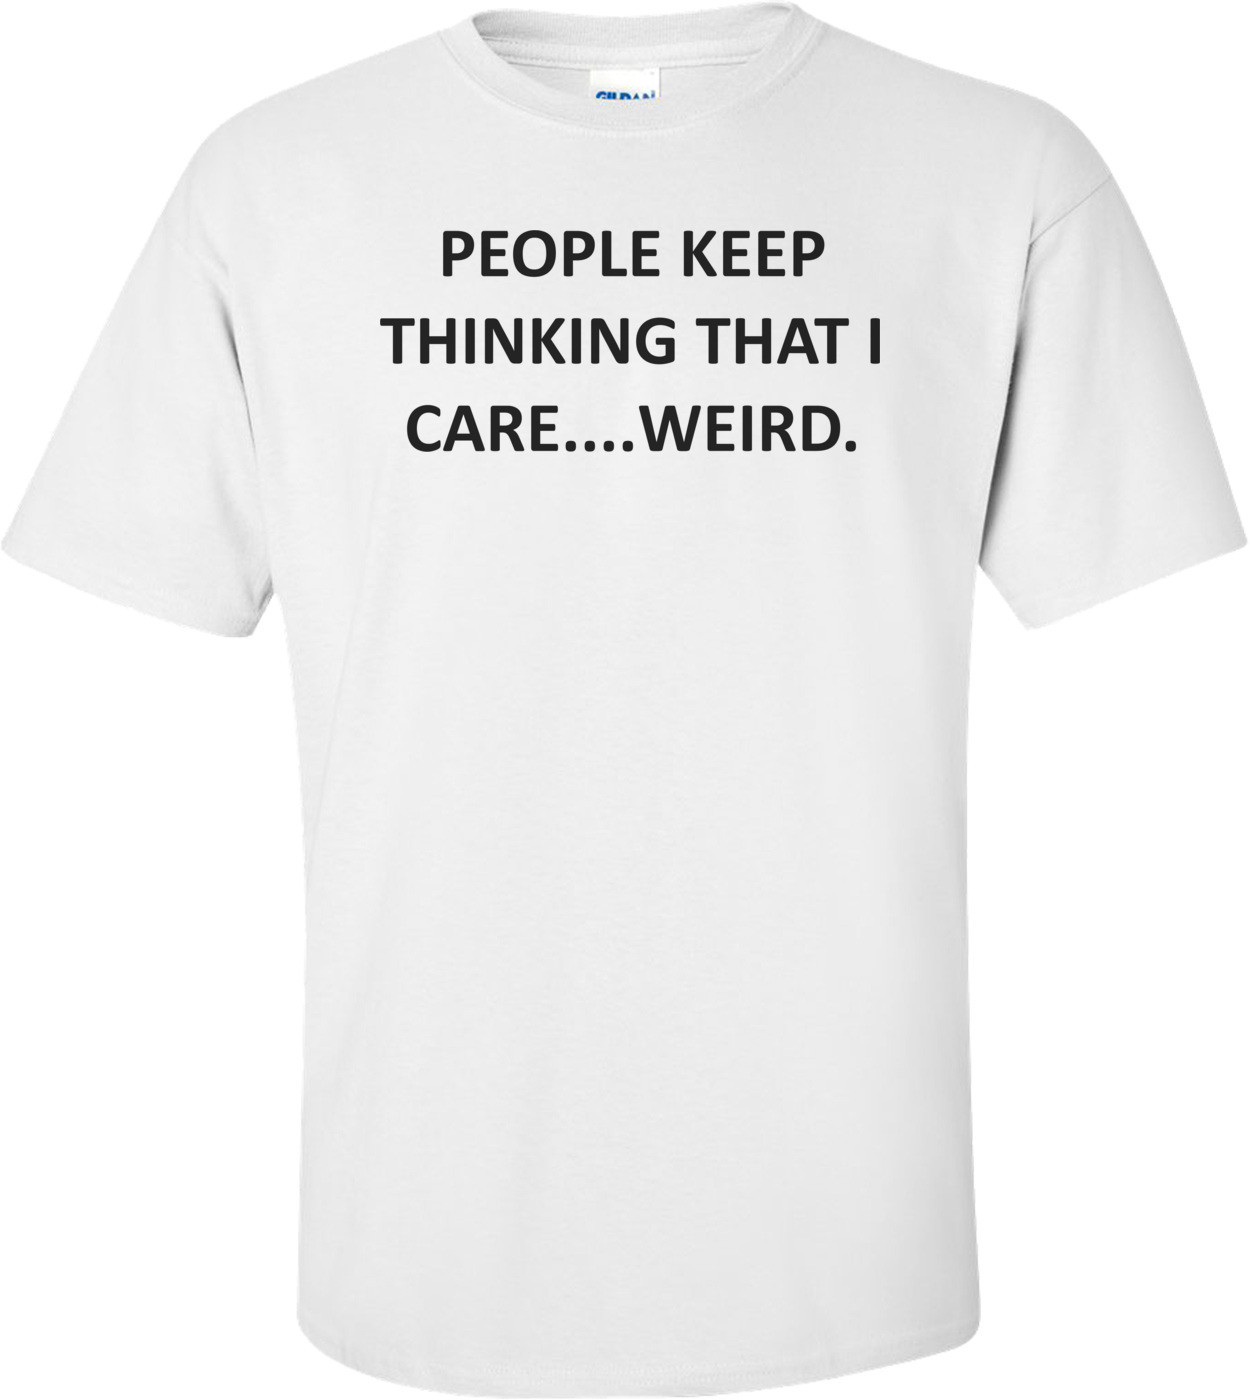 PEOPLE KEEP THINKING THAT I CARE....WEIRD. Shirt